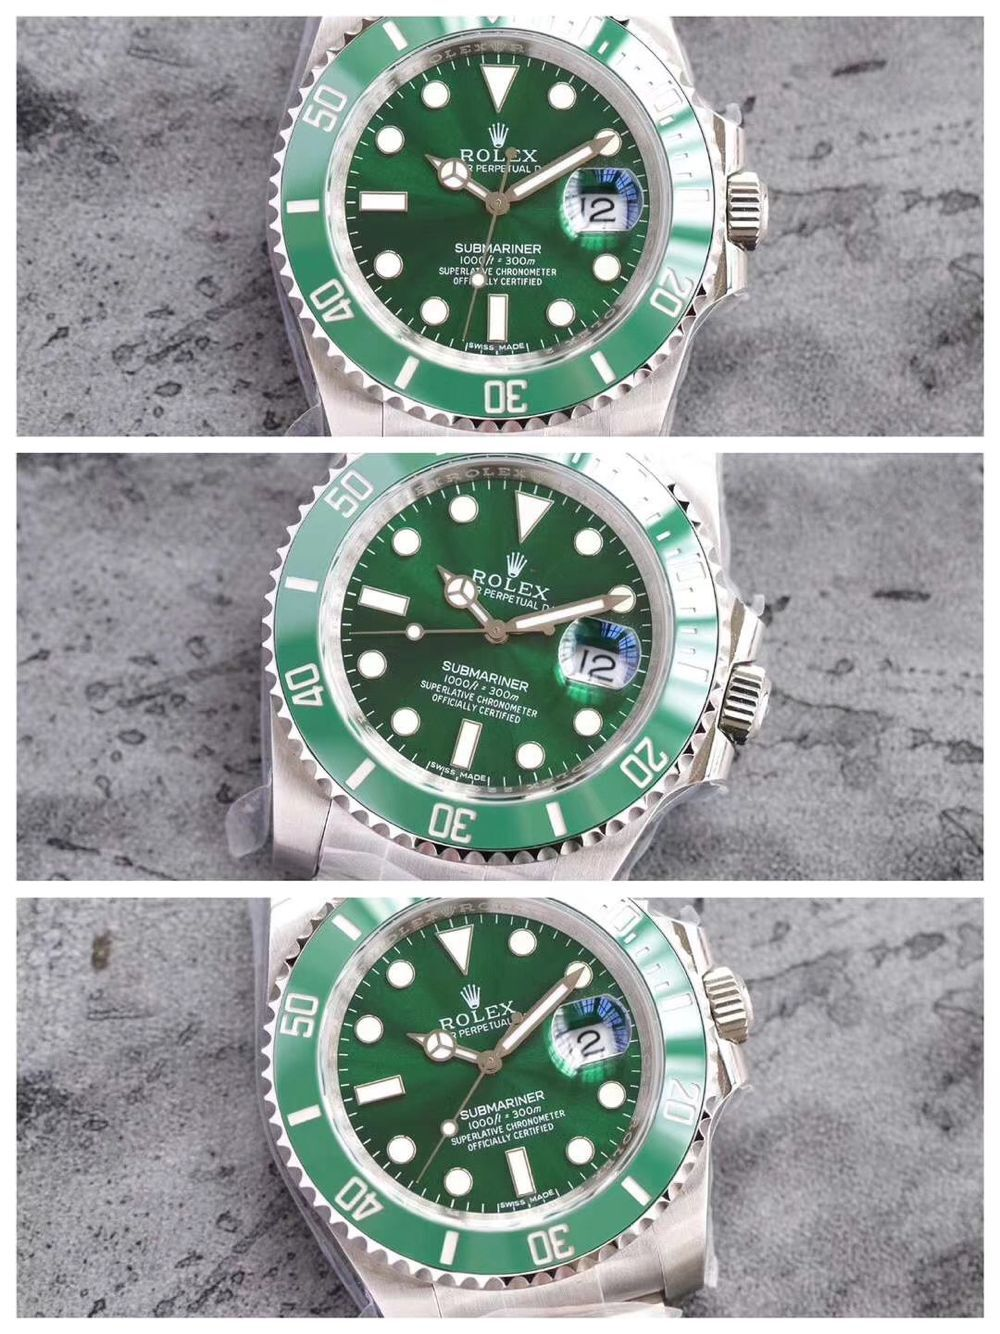 Rolex Submariner Green Watch for men